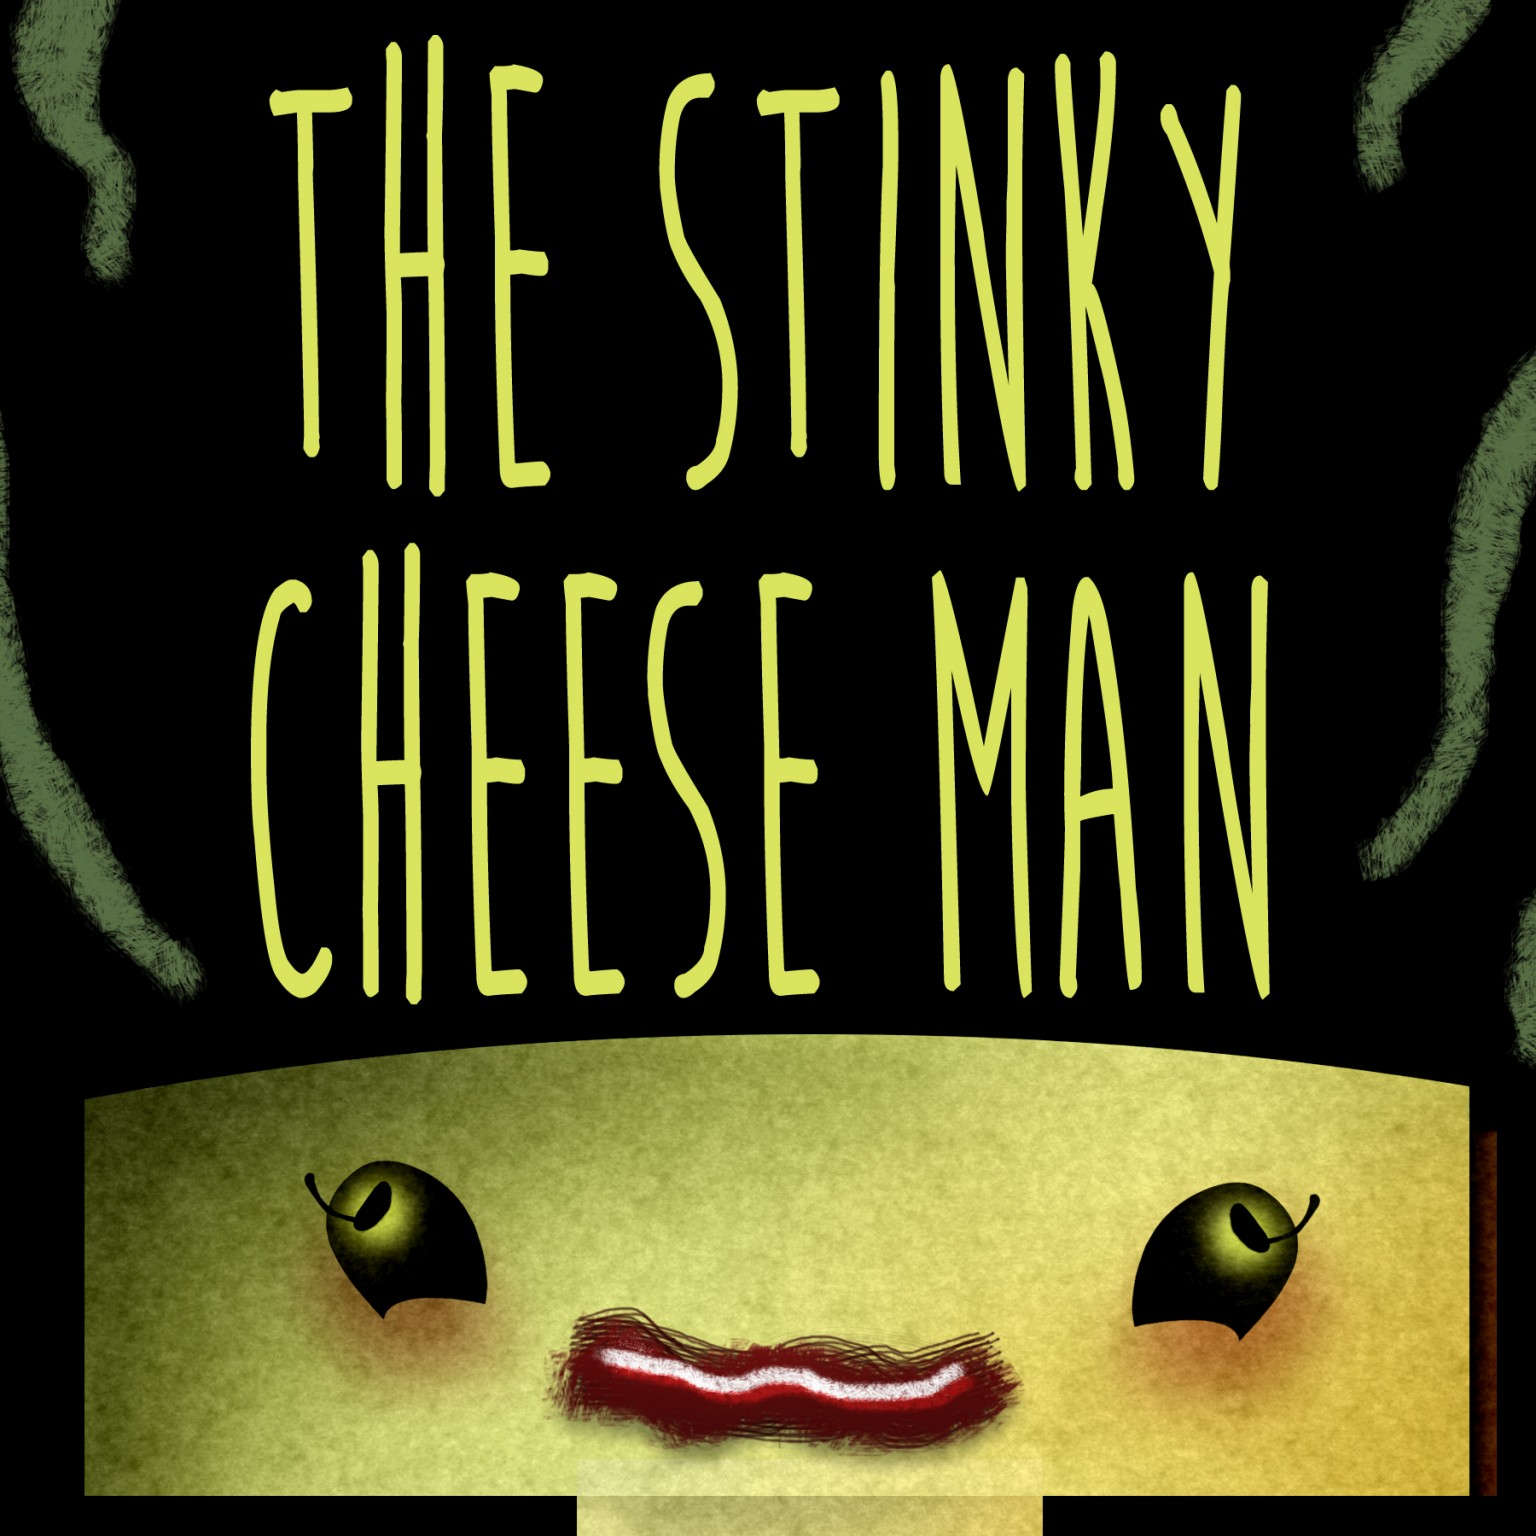 the-stinky-cheese-man2